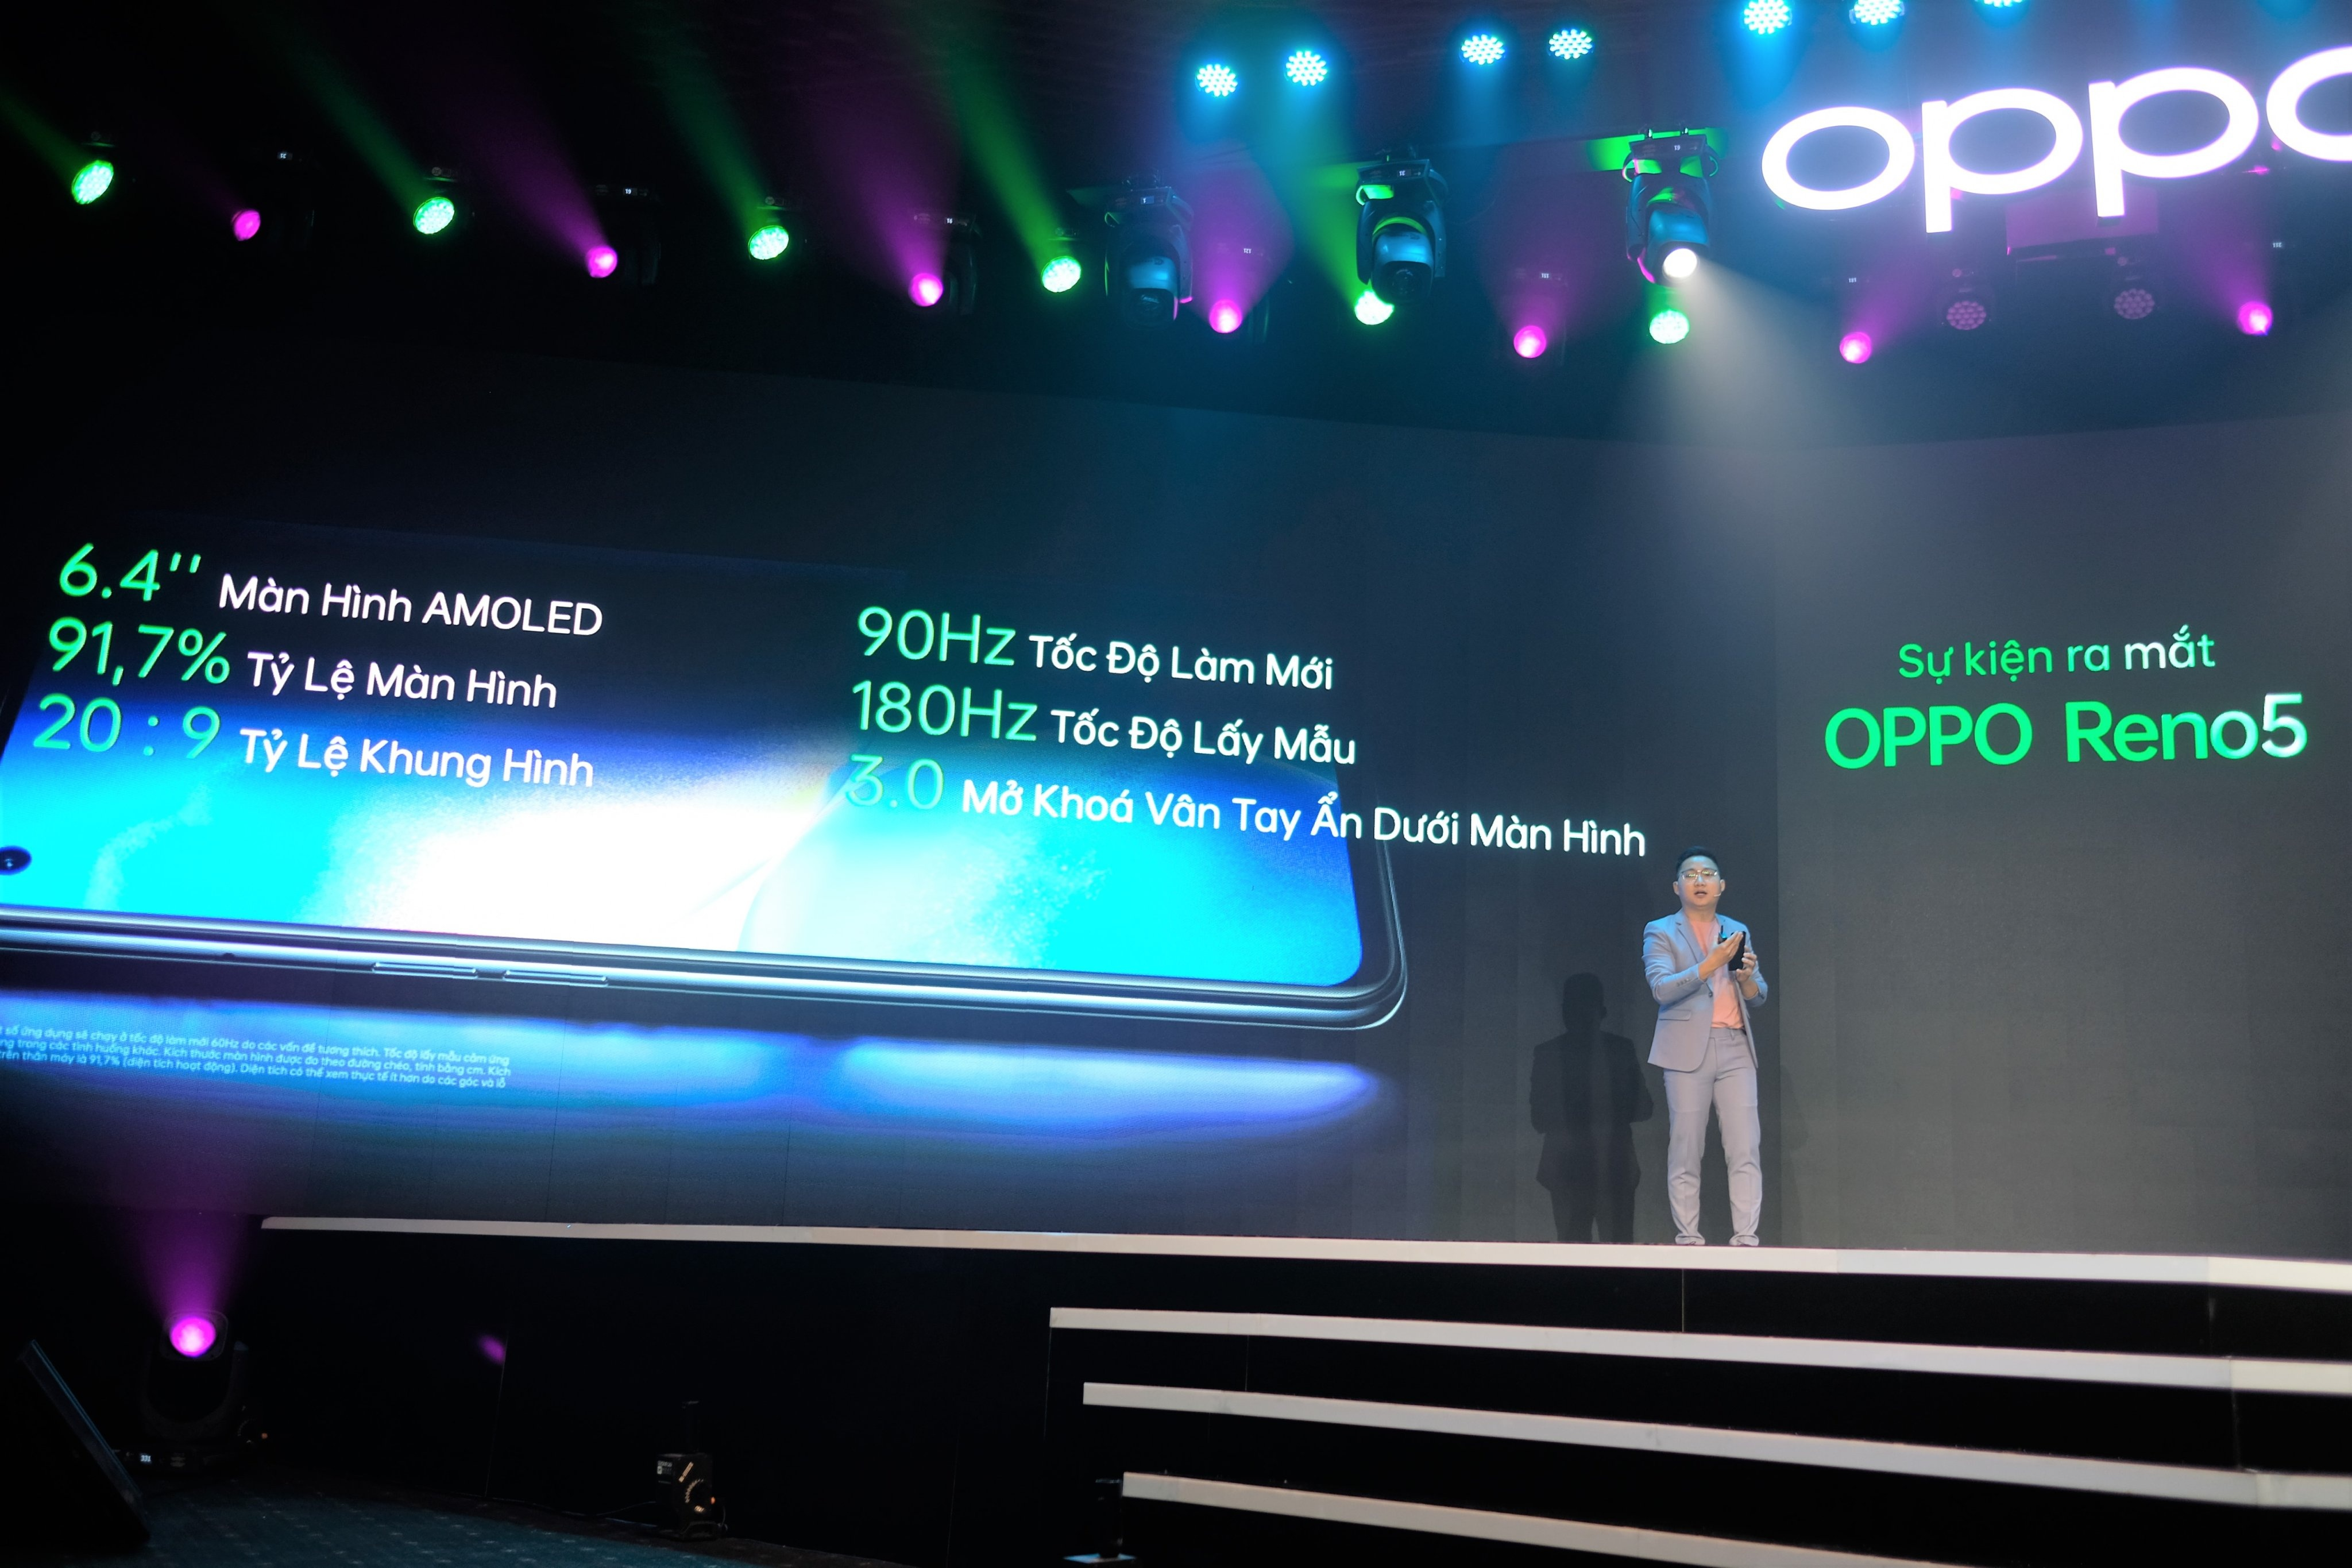 Oppo anh 10